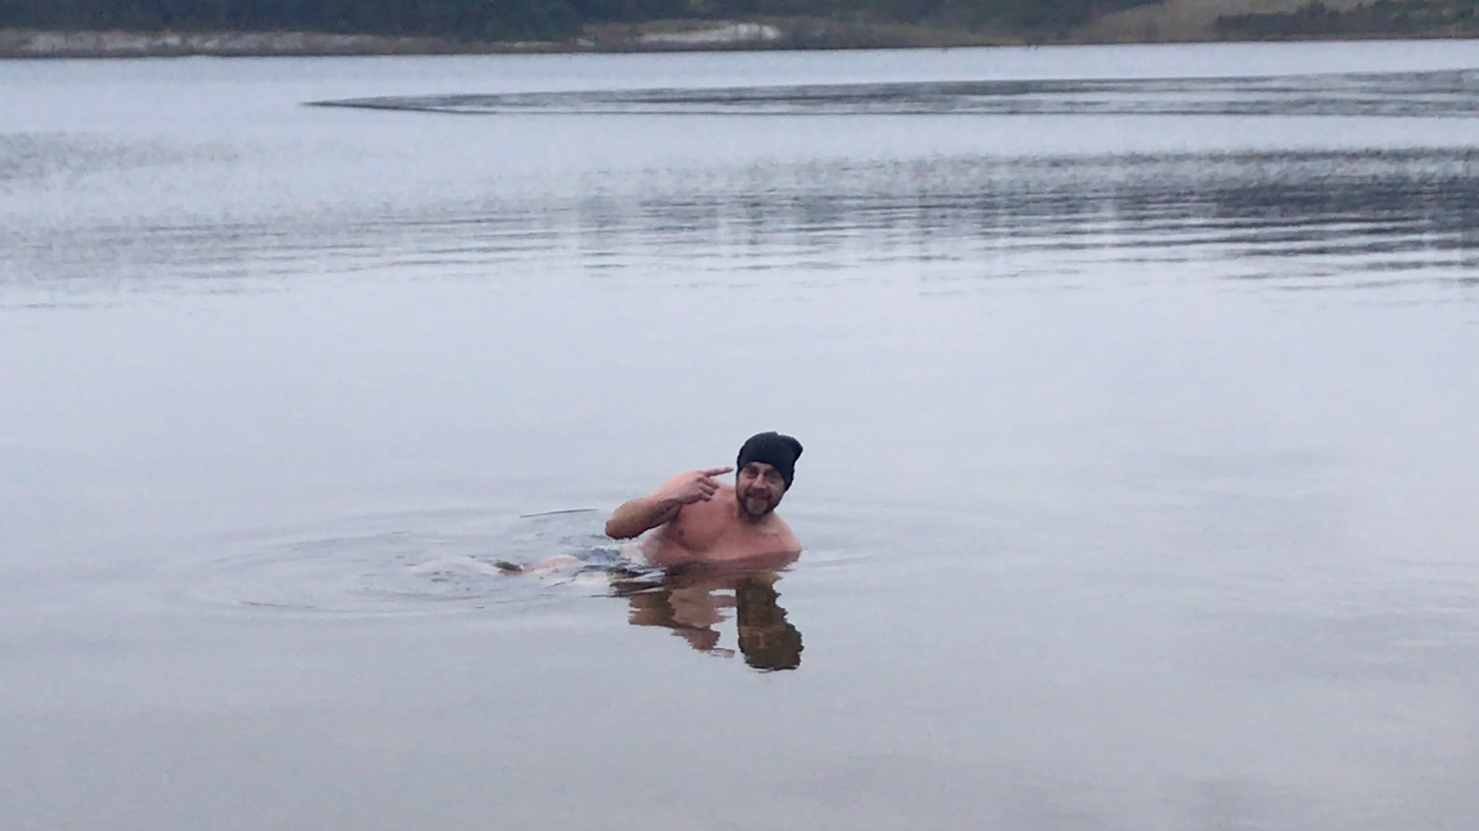 Image 22 of 27 - Experience the Wim Hof Method to get an impression of  at